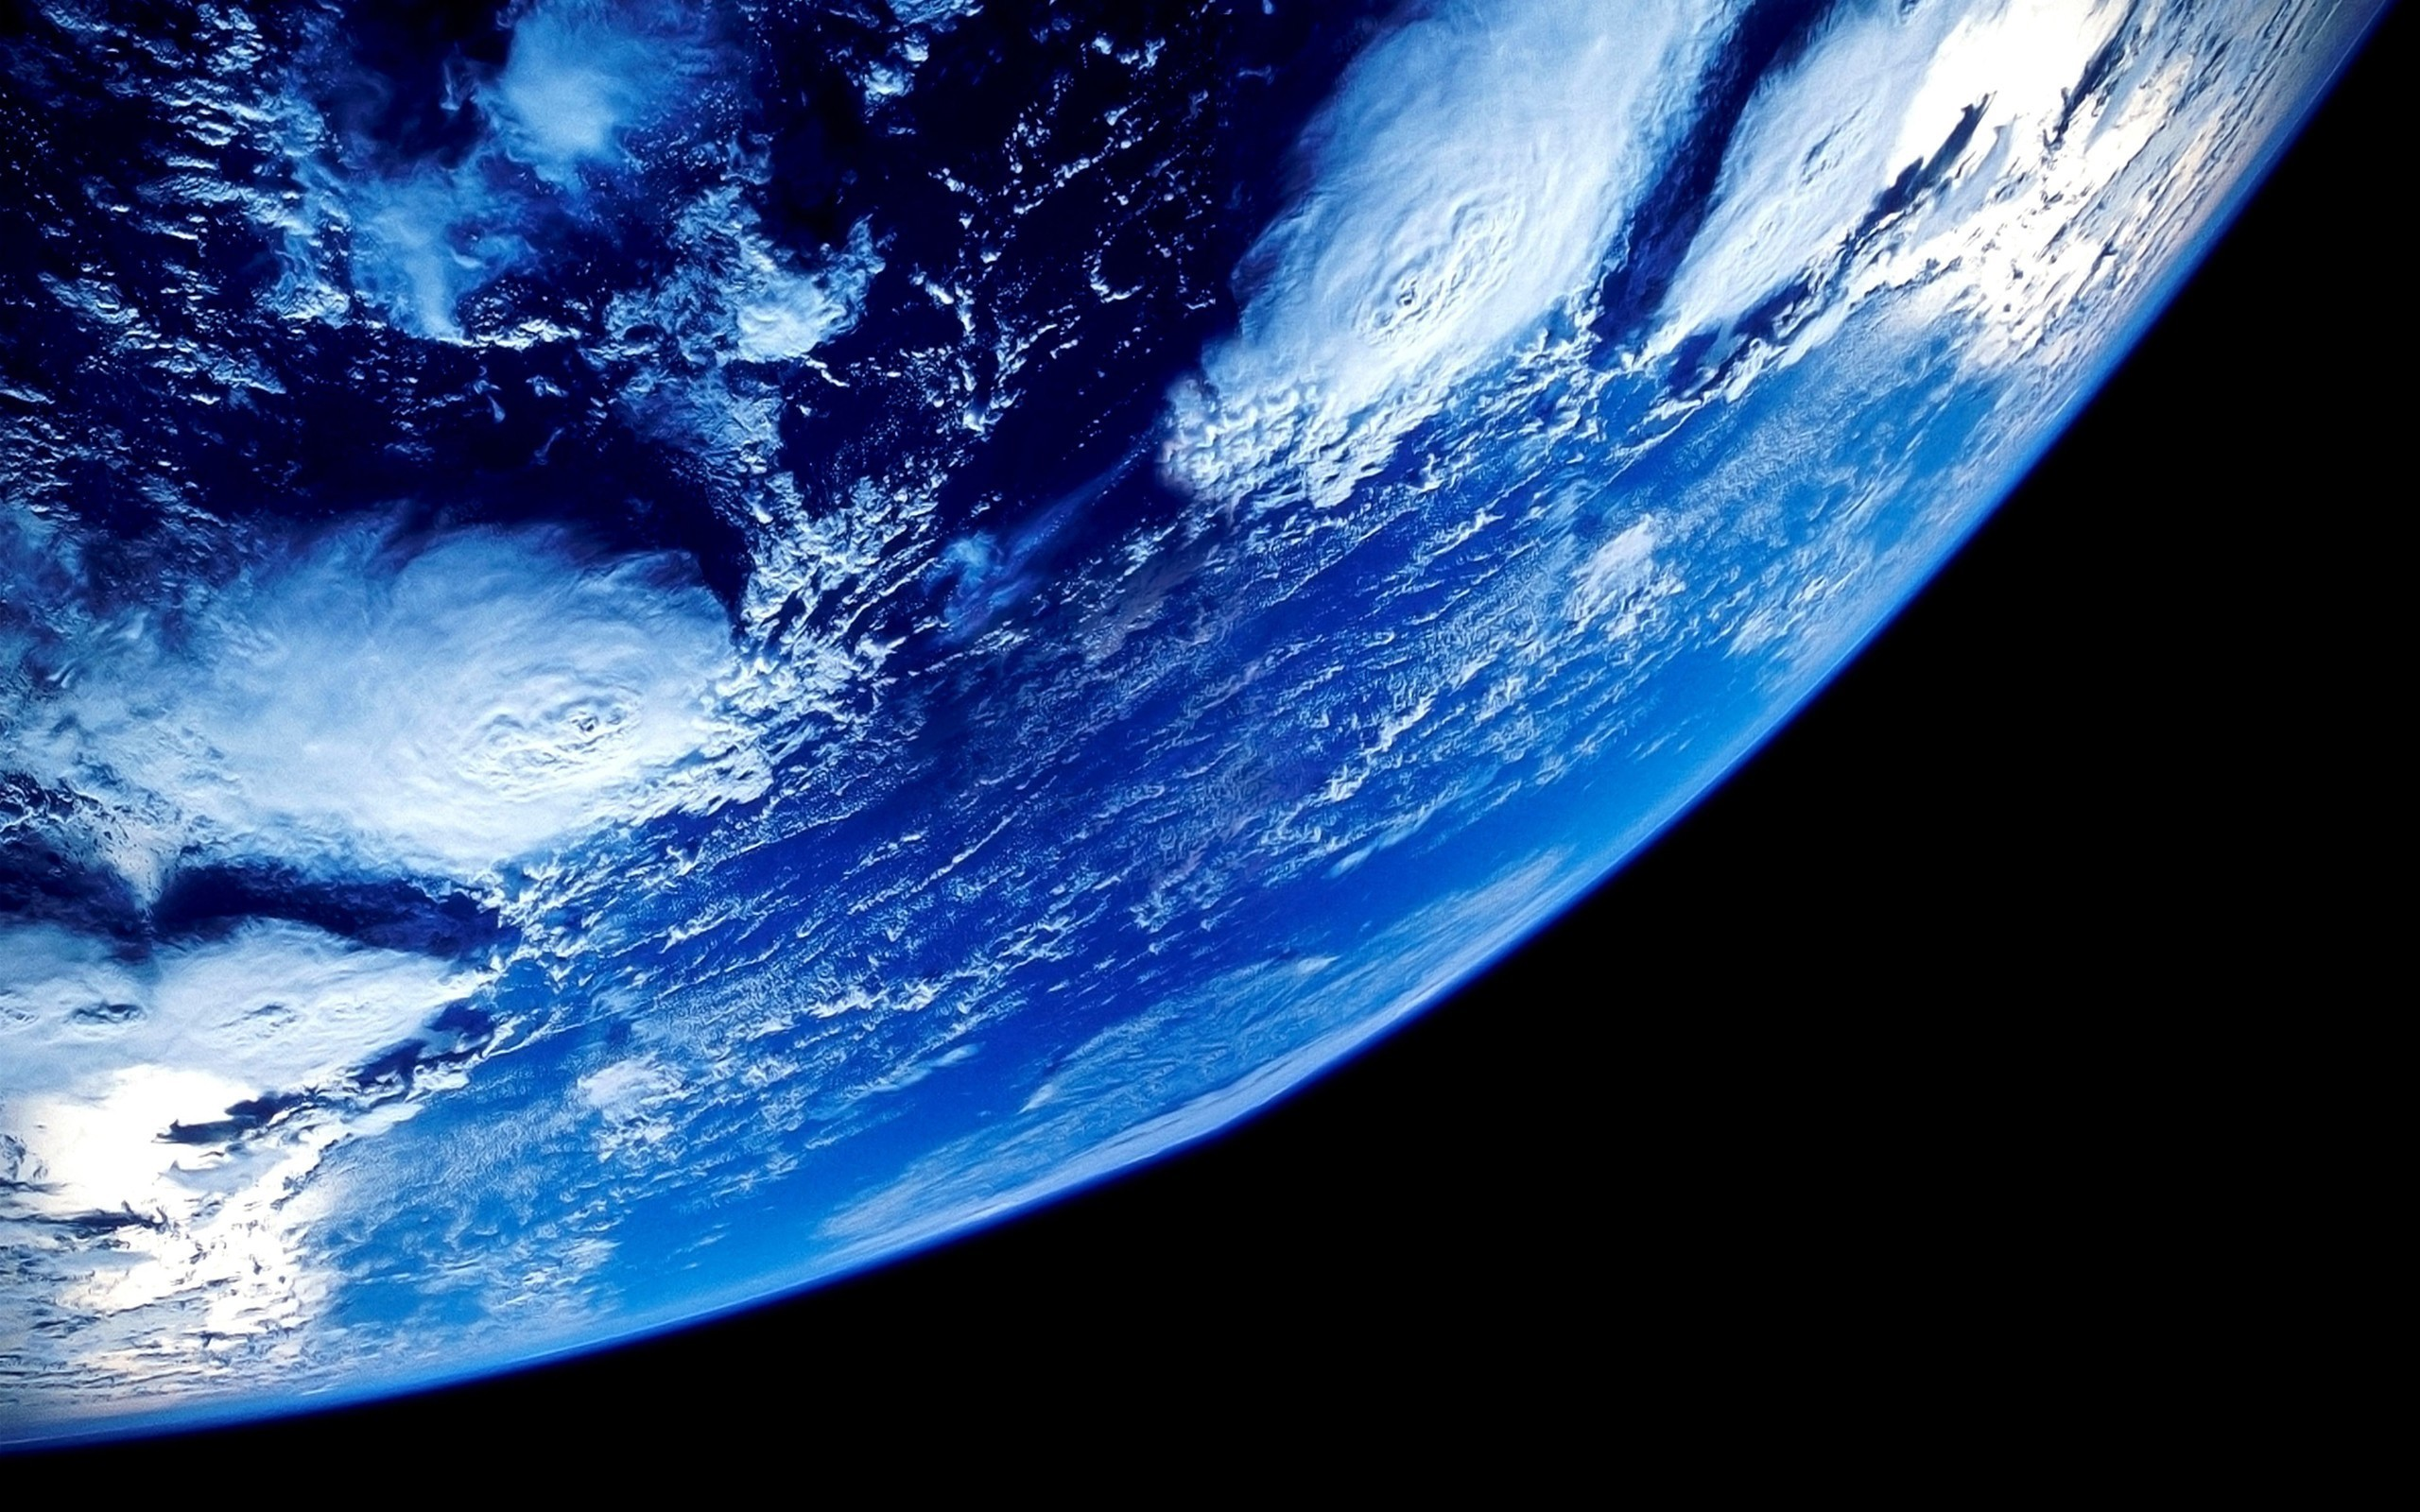 Earth From Space (Close-up) HD desktop wallpaper : High Definition : Mobile